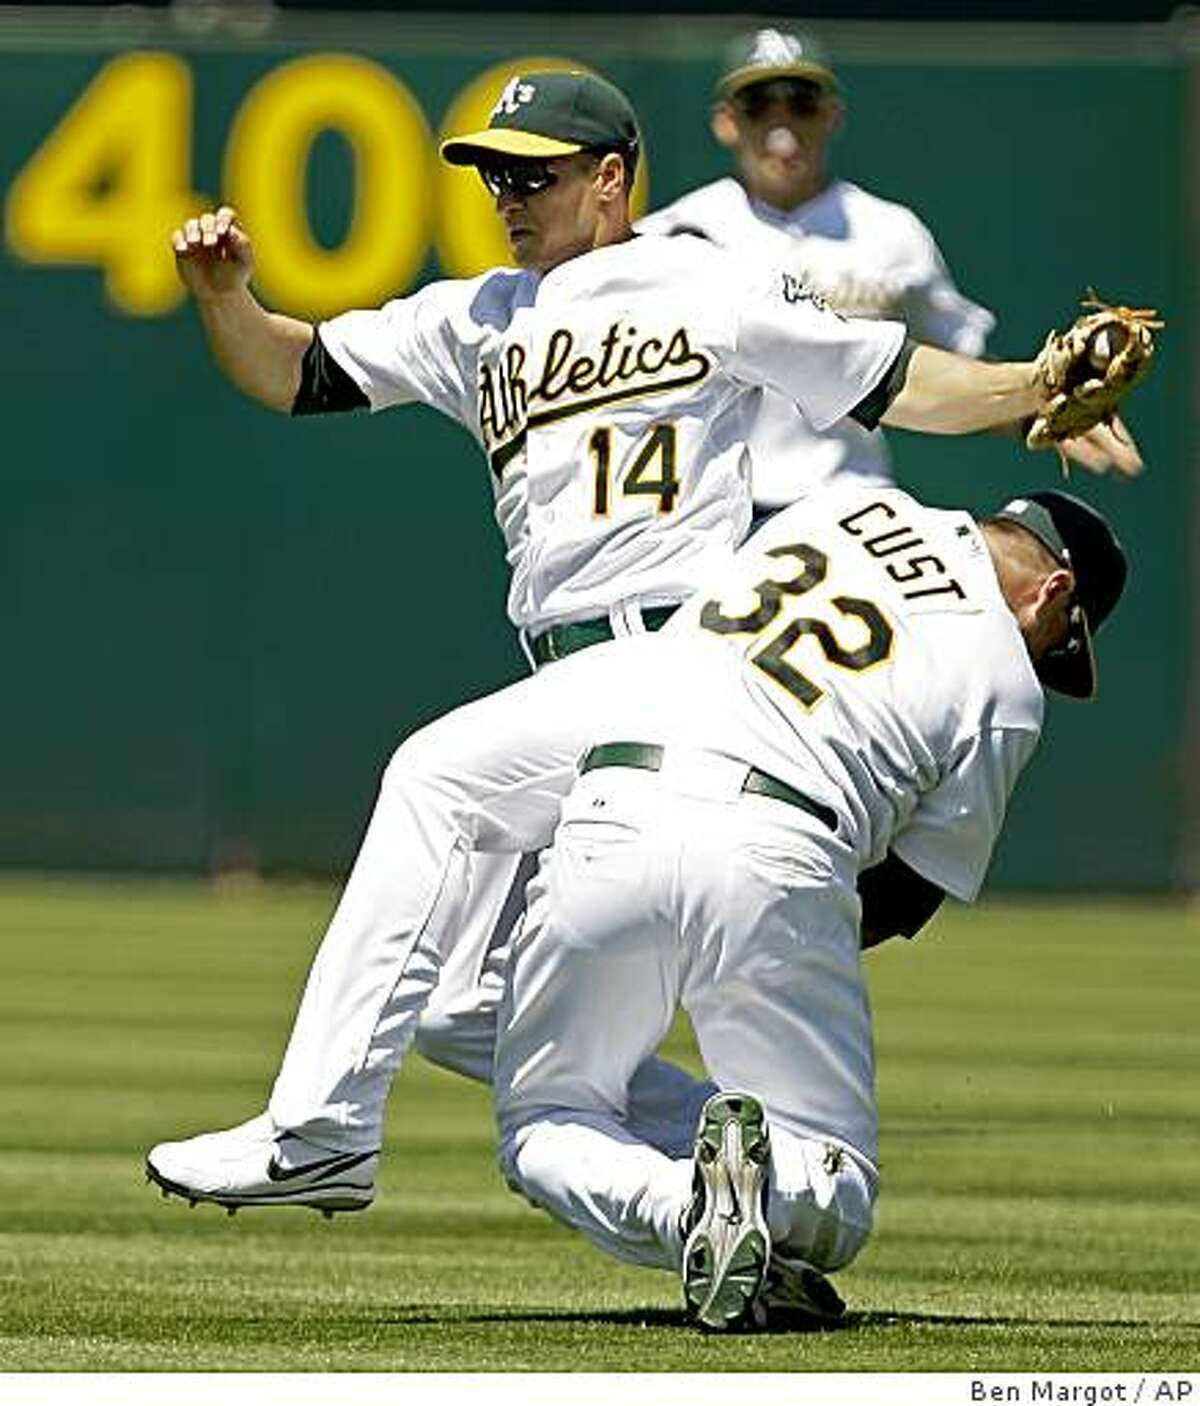 Oakland Athletics' Mark Ellis (14) collides with teammate Jack Cust after making the catch on a ball hit by Colorado Rockies' Ian Stewart in the sixth inning of a baseball game Sunday, June 28, 2009, in Oakland, Calif. (AP Photo/Ben Margot)